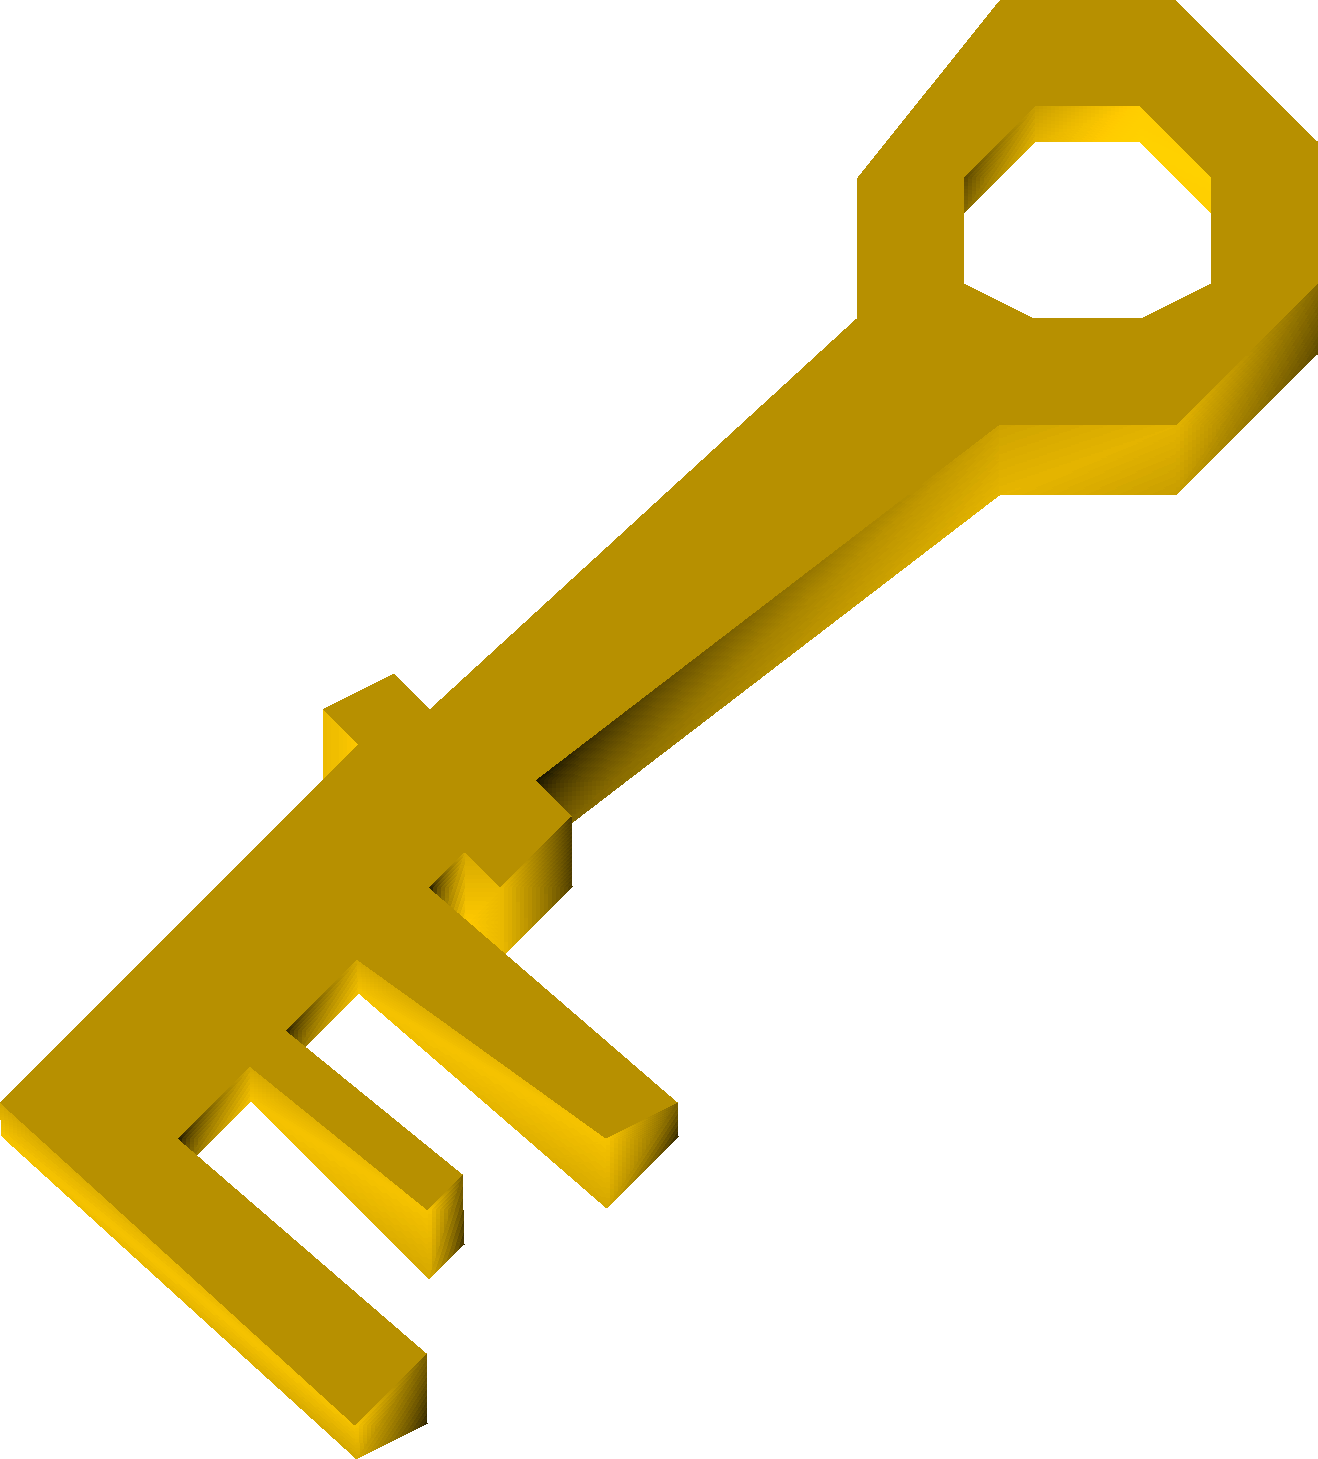 File:New key detail.png